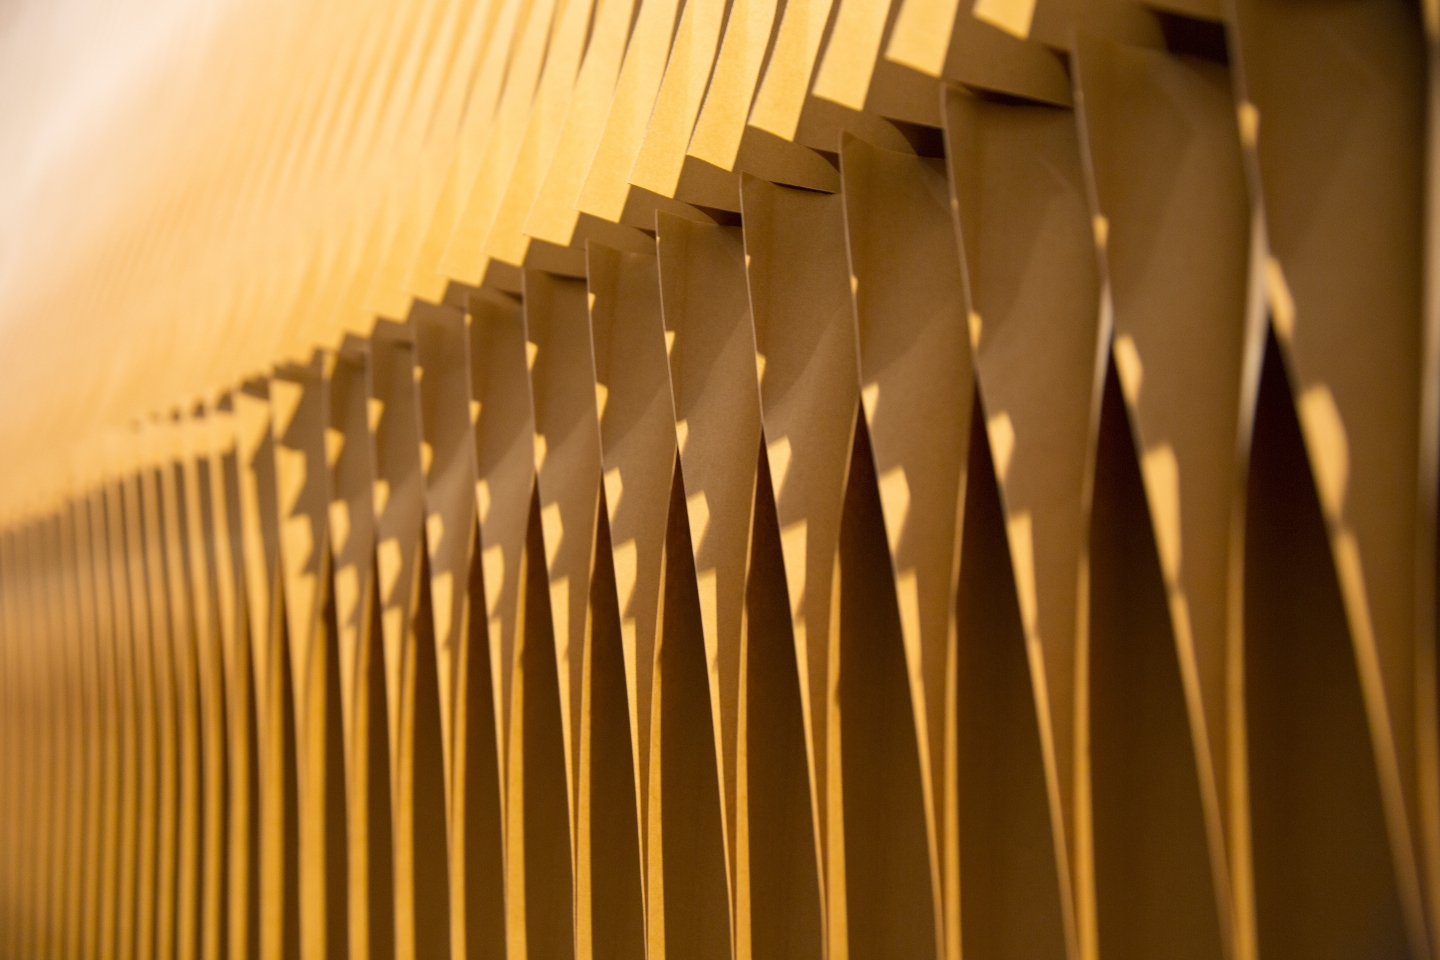 Detail of the light and shadow on paper softwall. accordion portable partition walls by molo